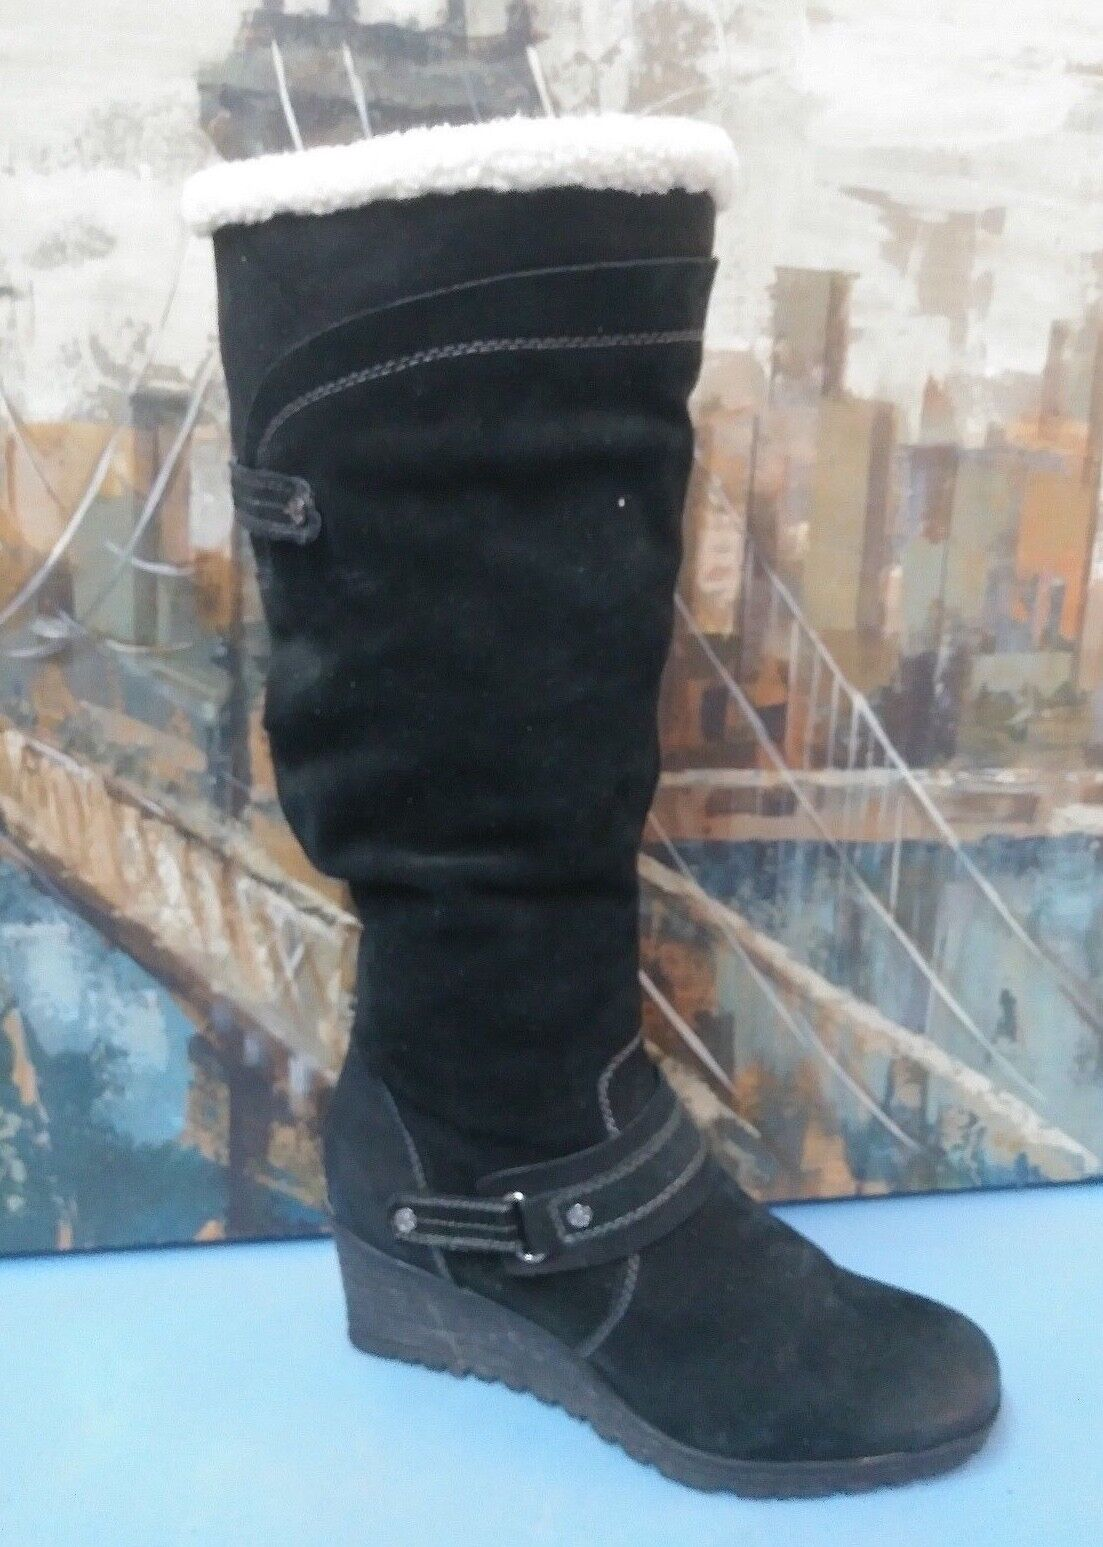 Women's Earth Ridge Knee high boots Black leather Size 9 B